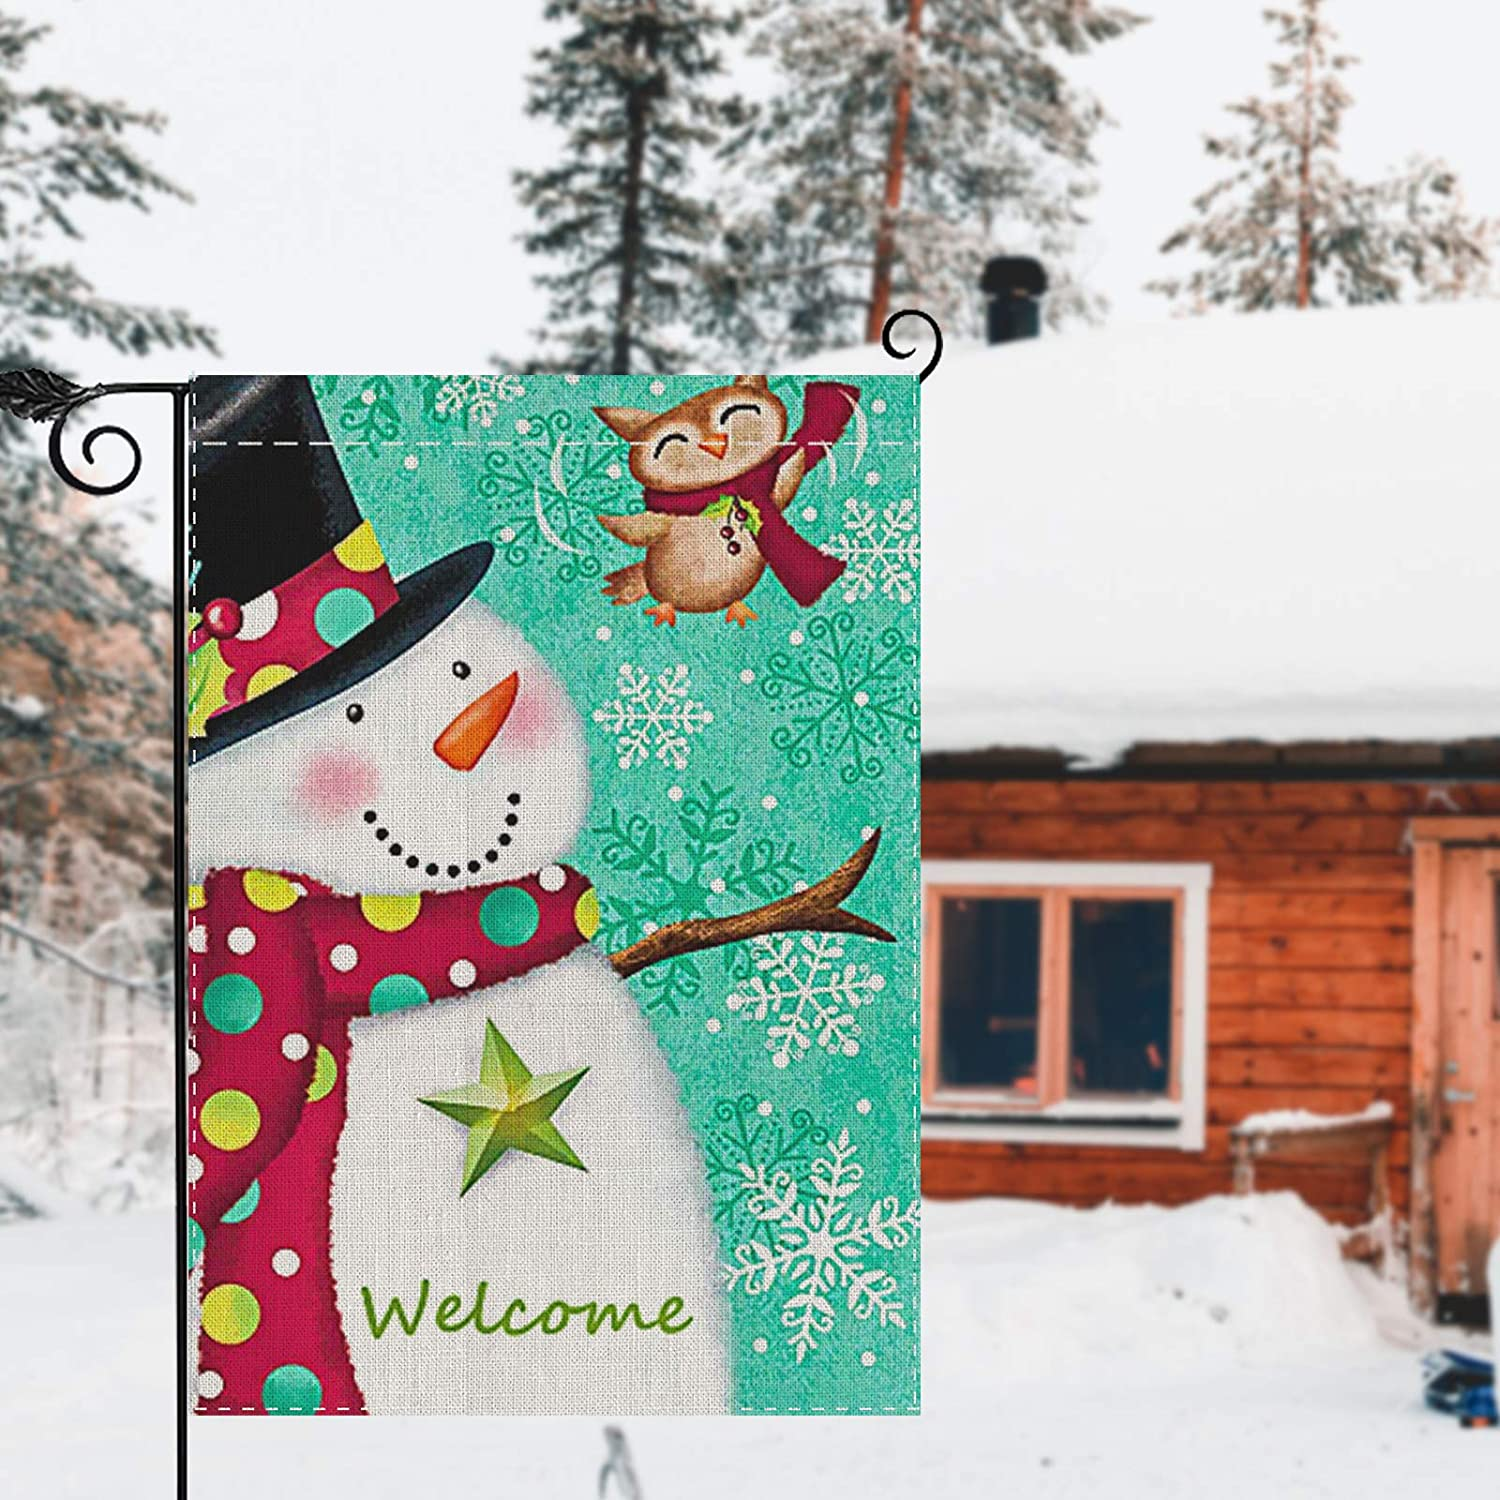 TGOOD Merry Christmas Garden Flag, Double Sided Home Decorative Nativity Xmas Rustic Winter Snowman Yard Sign Flag Banner, Vintage New Year Seasonal Outdoor Burlap Flag 12.5 x 18 Holiday